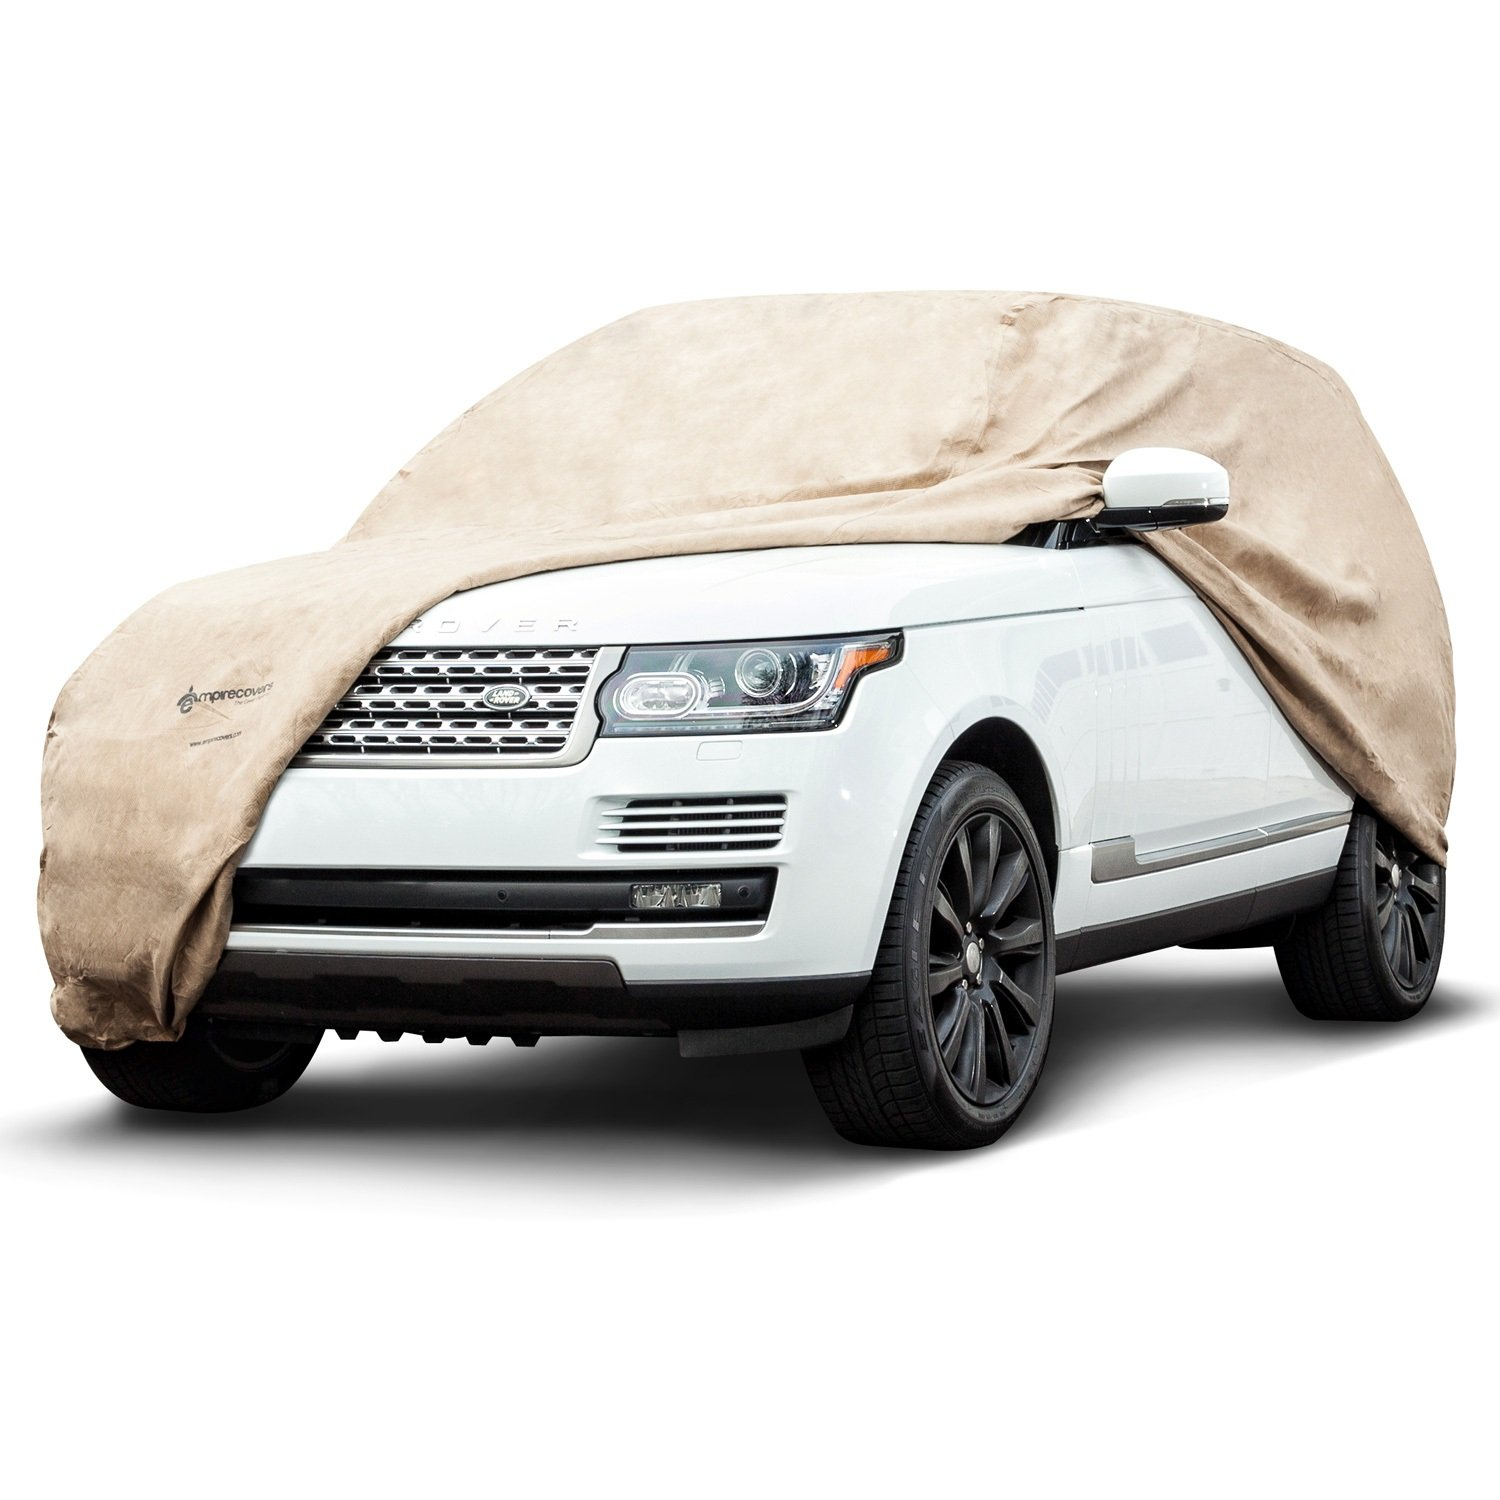 Dustproof Budge A- A-5 Tan 22 feet Protector IV Waterproof UV Treated Cover Fits Cars up to 264 4 Layer Reliable Weather Protection